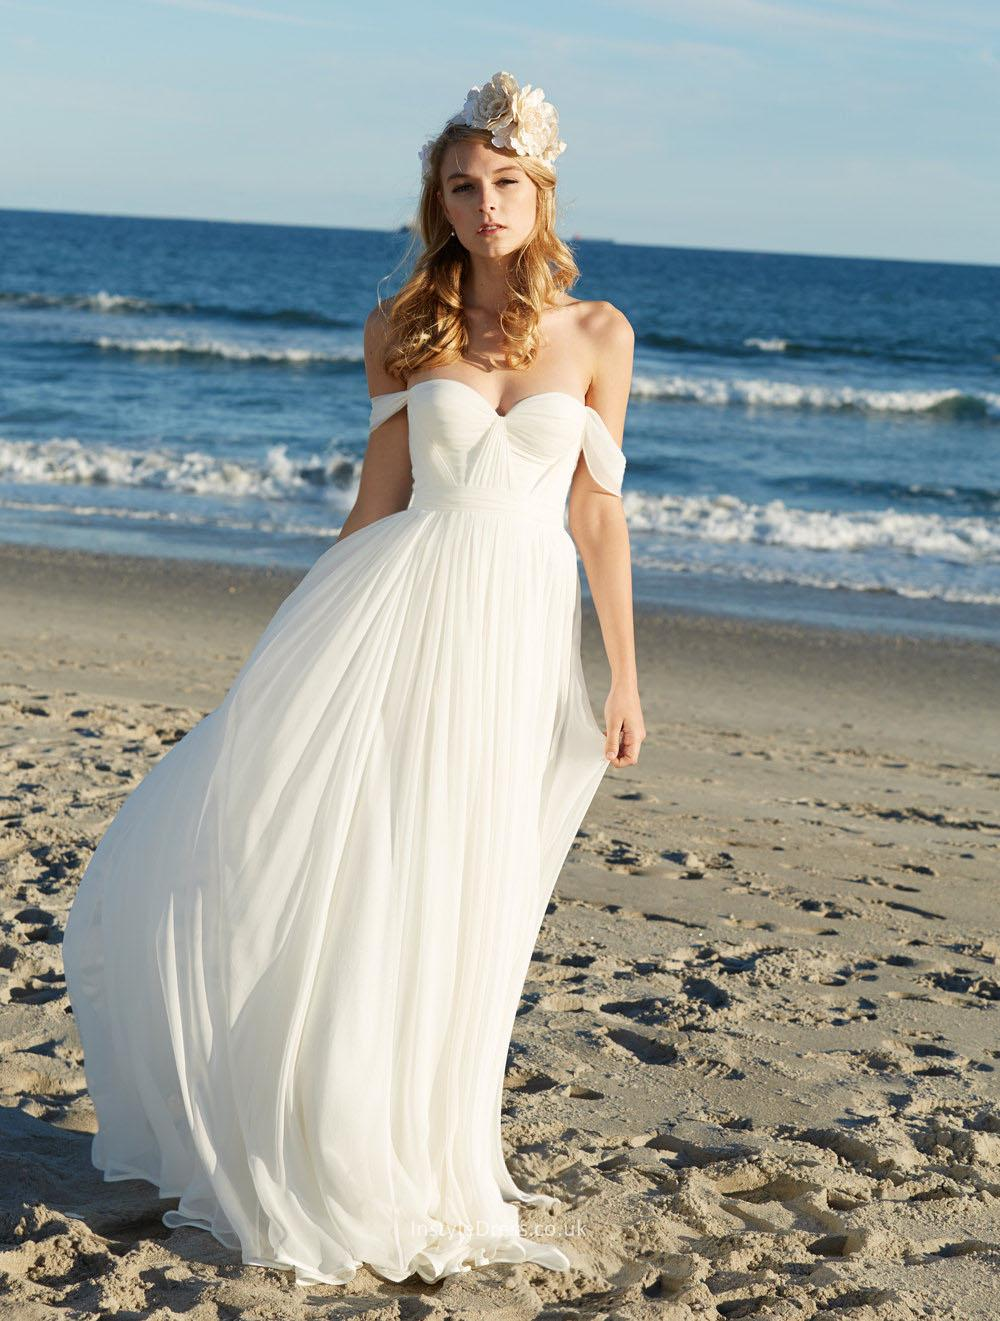 Beach Wedding Gowns: Fashion, Beauty And Lifestyle Blog